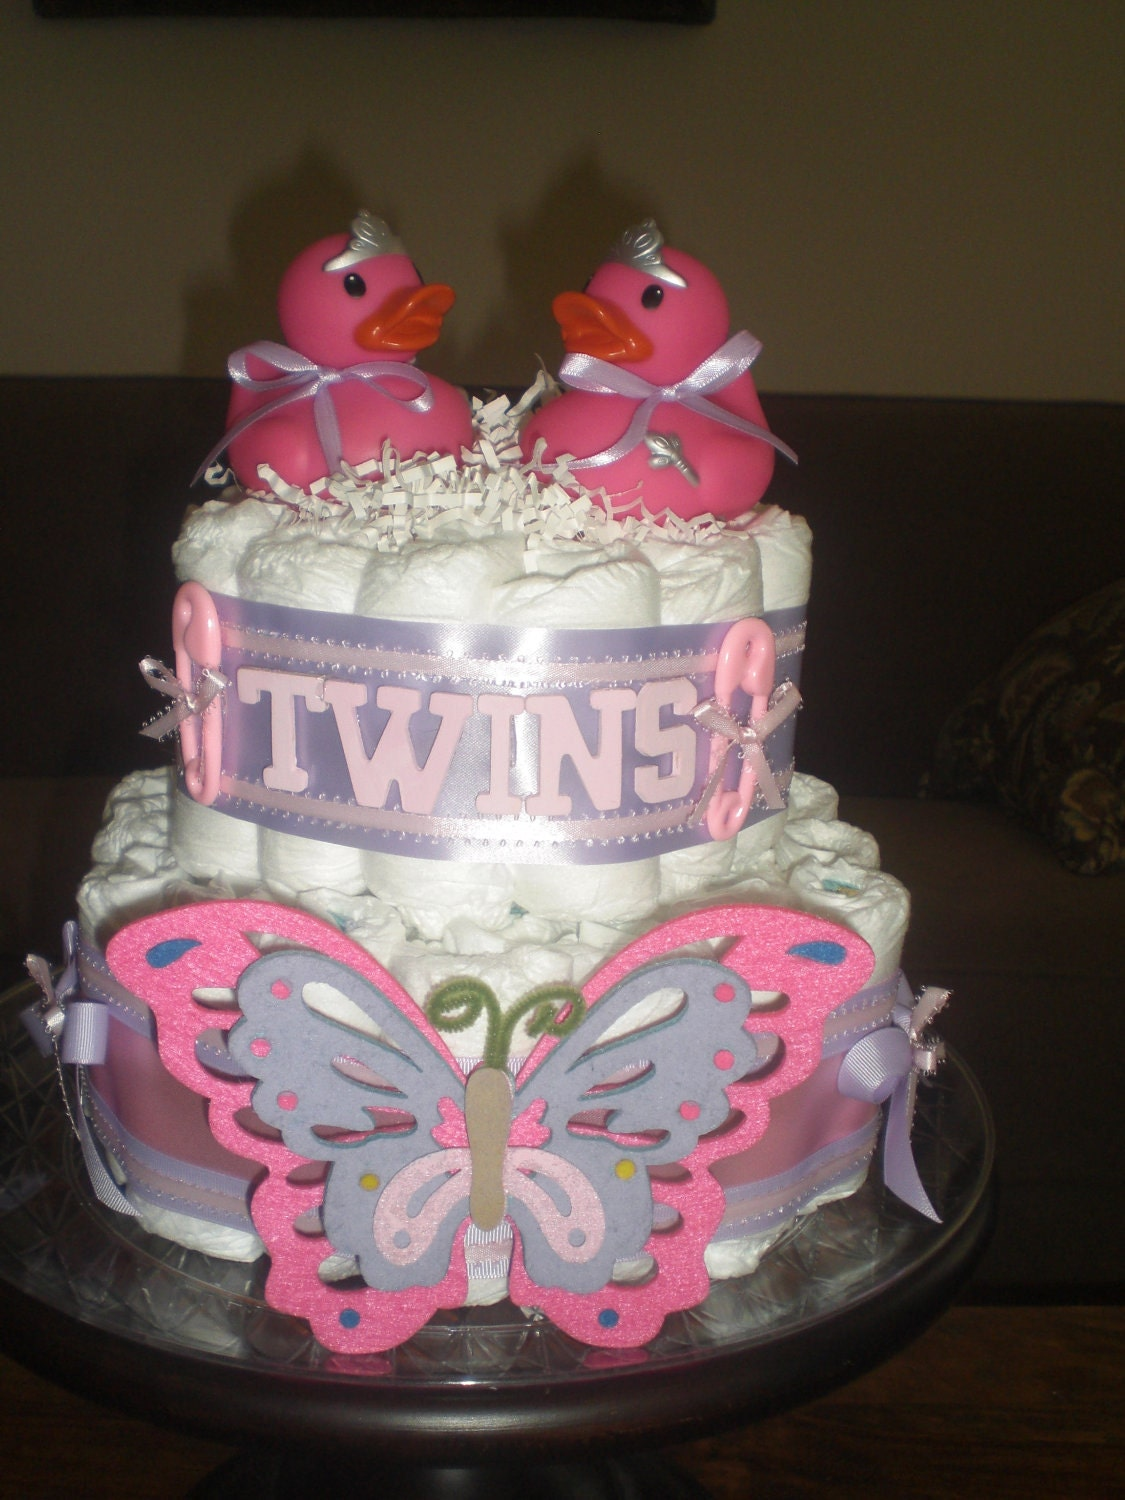 Diaper Cake Centerpiece For Baby Shower : Twins Diaper Cakes baby shower gift or centerpiece boy or girl